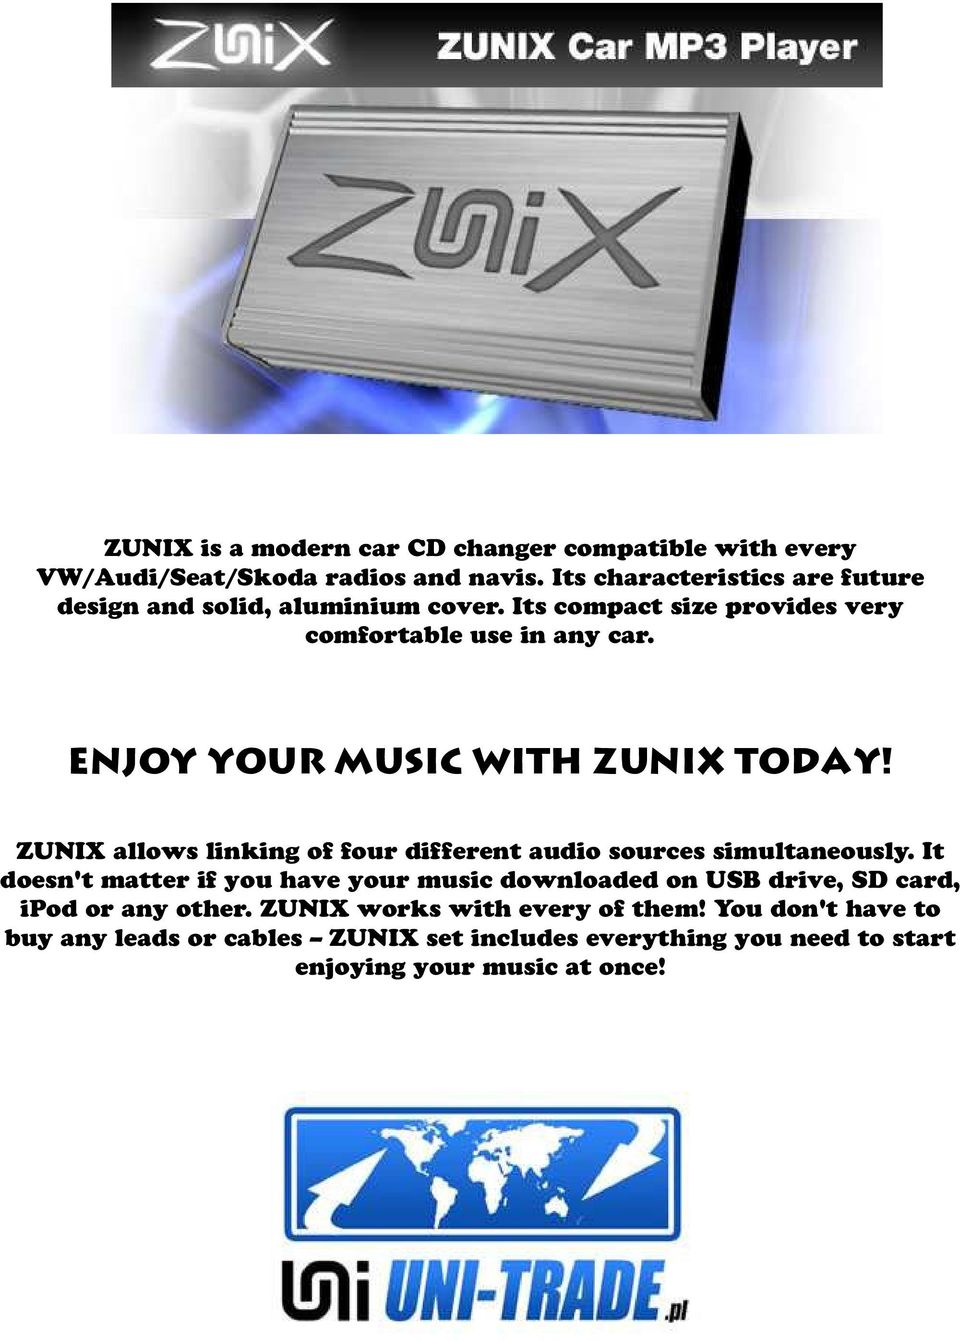 Enjoy your music with ZUNIX today! ZUNIX allows linking of four different audio sources simultaneously.